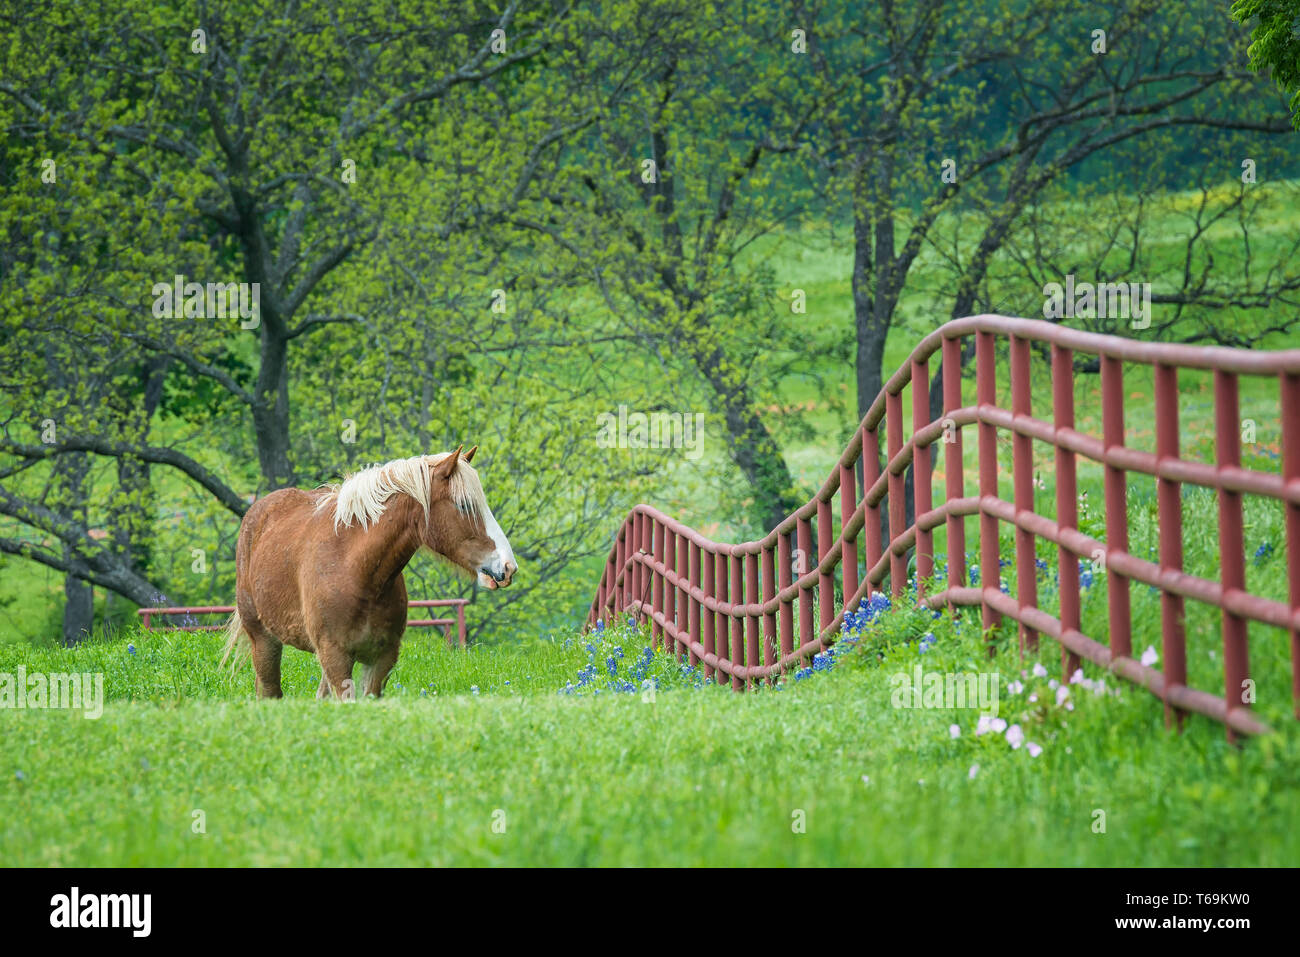 Belgian Draft Horse grazing by a fence on green Texas bluebonnet and wildflower pasture in the spring. Stock Photo